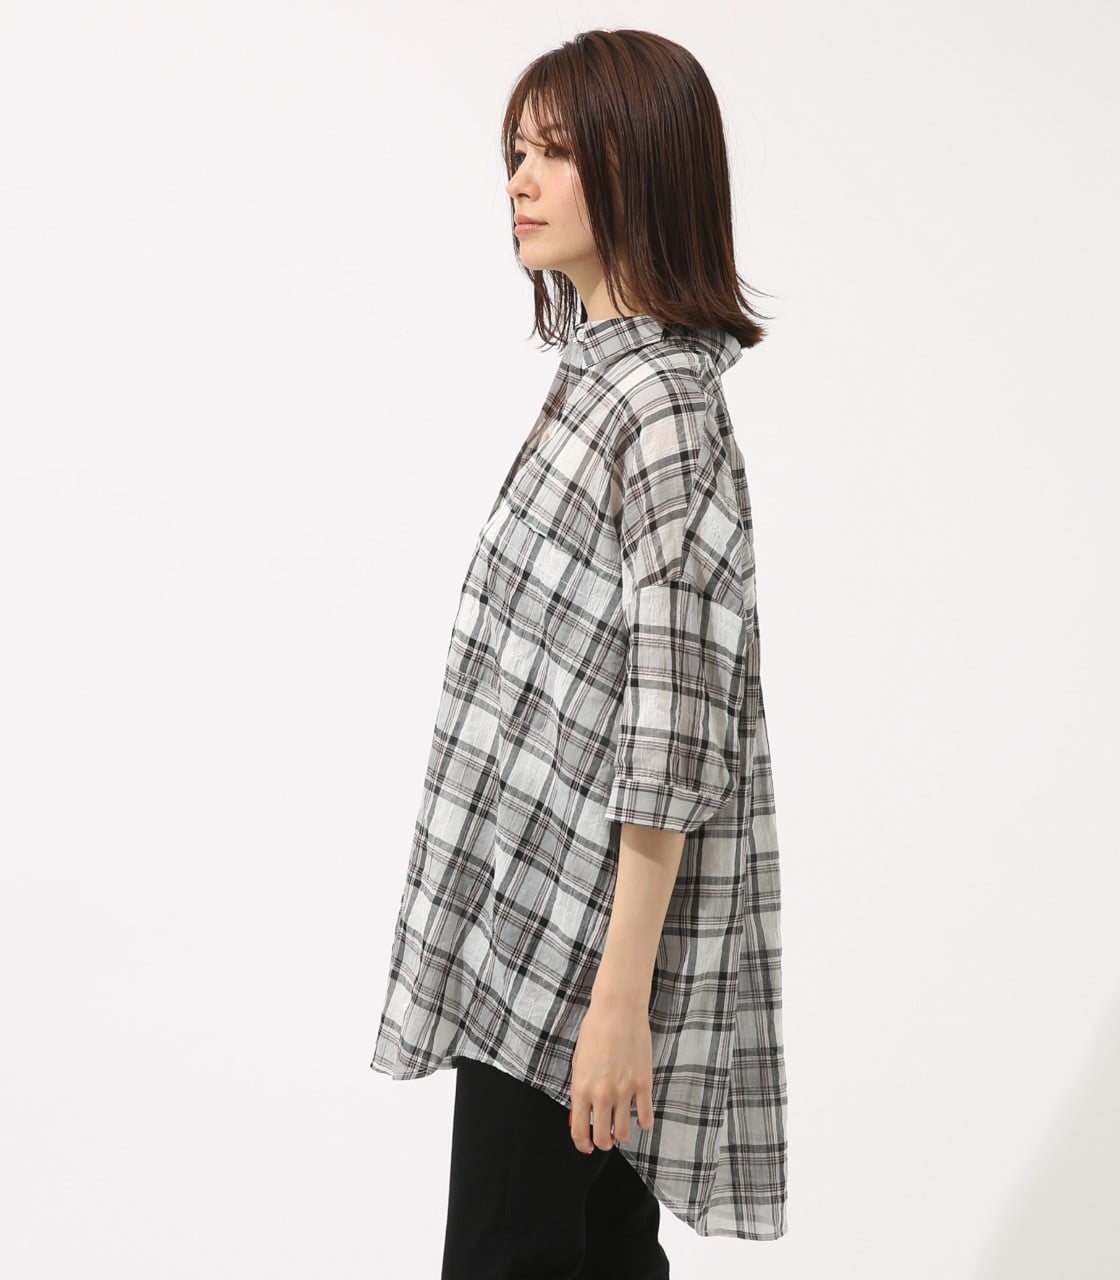 【AZUL BY MOUSSY】チェックドロップオーバーシャツ【MOOK46掲載 94048】 詳細画像 柄WHT 6